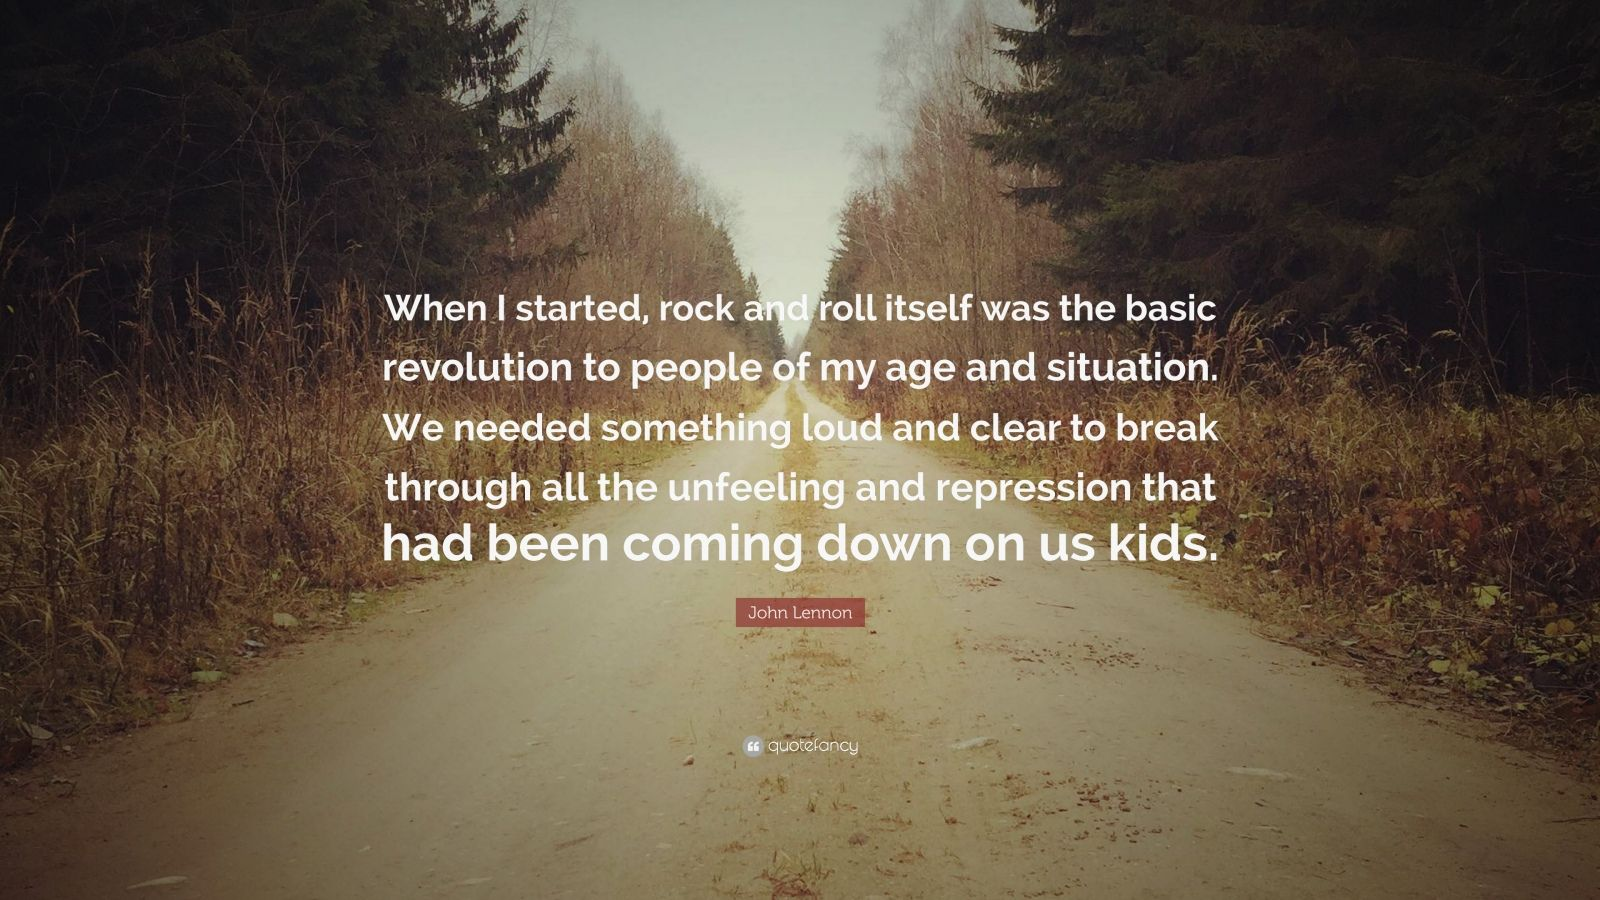 """John Lennon Quote: """"When I started, rock and roll itself was the basic revolution to people of my age and situation. We needed something loud and clear to break through all the unfeeling and repression that had been coming down on us kids."""""""